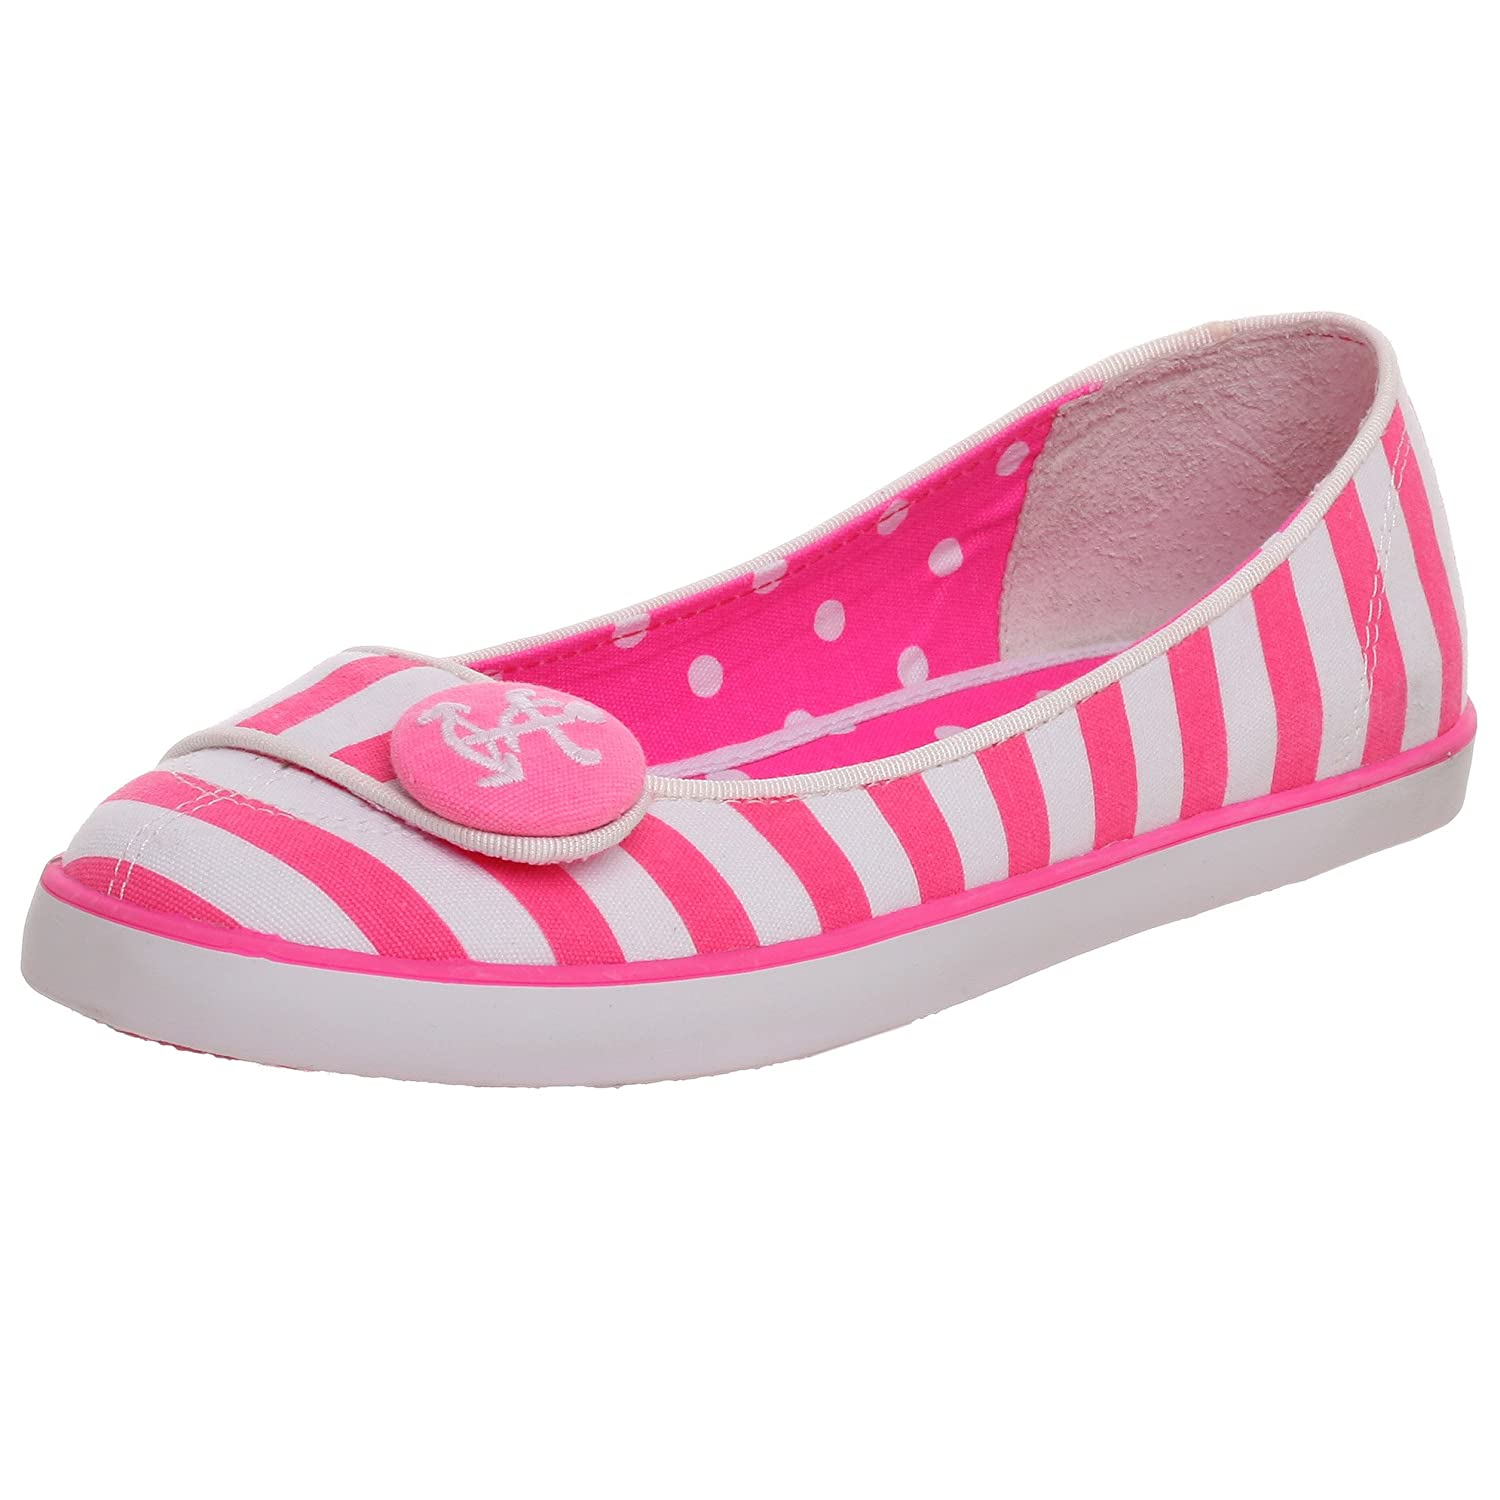 Betseyville Baylee Skimmer - Free Overnight Shipping & Return Shipping: Endless.com :  skimmer flats shoes canvas